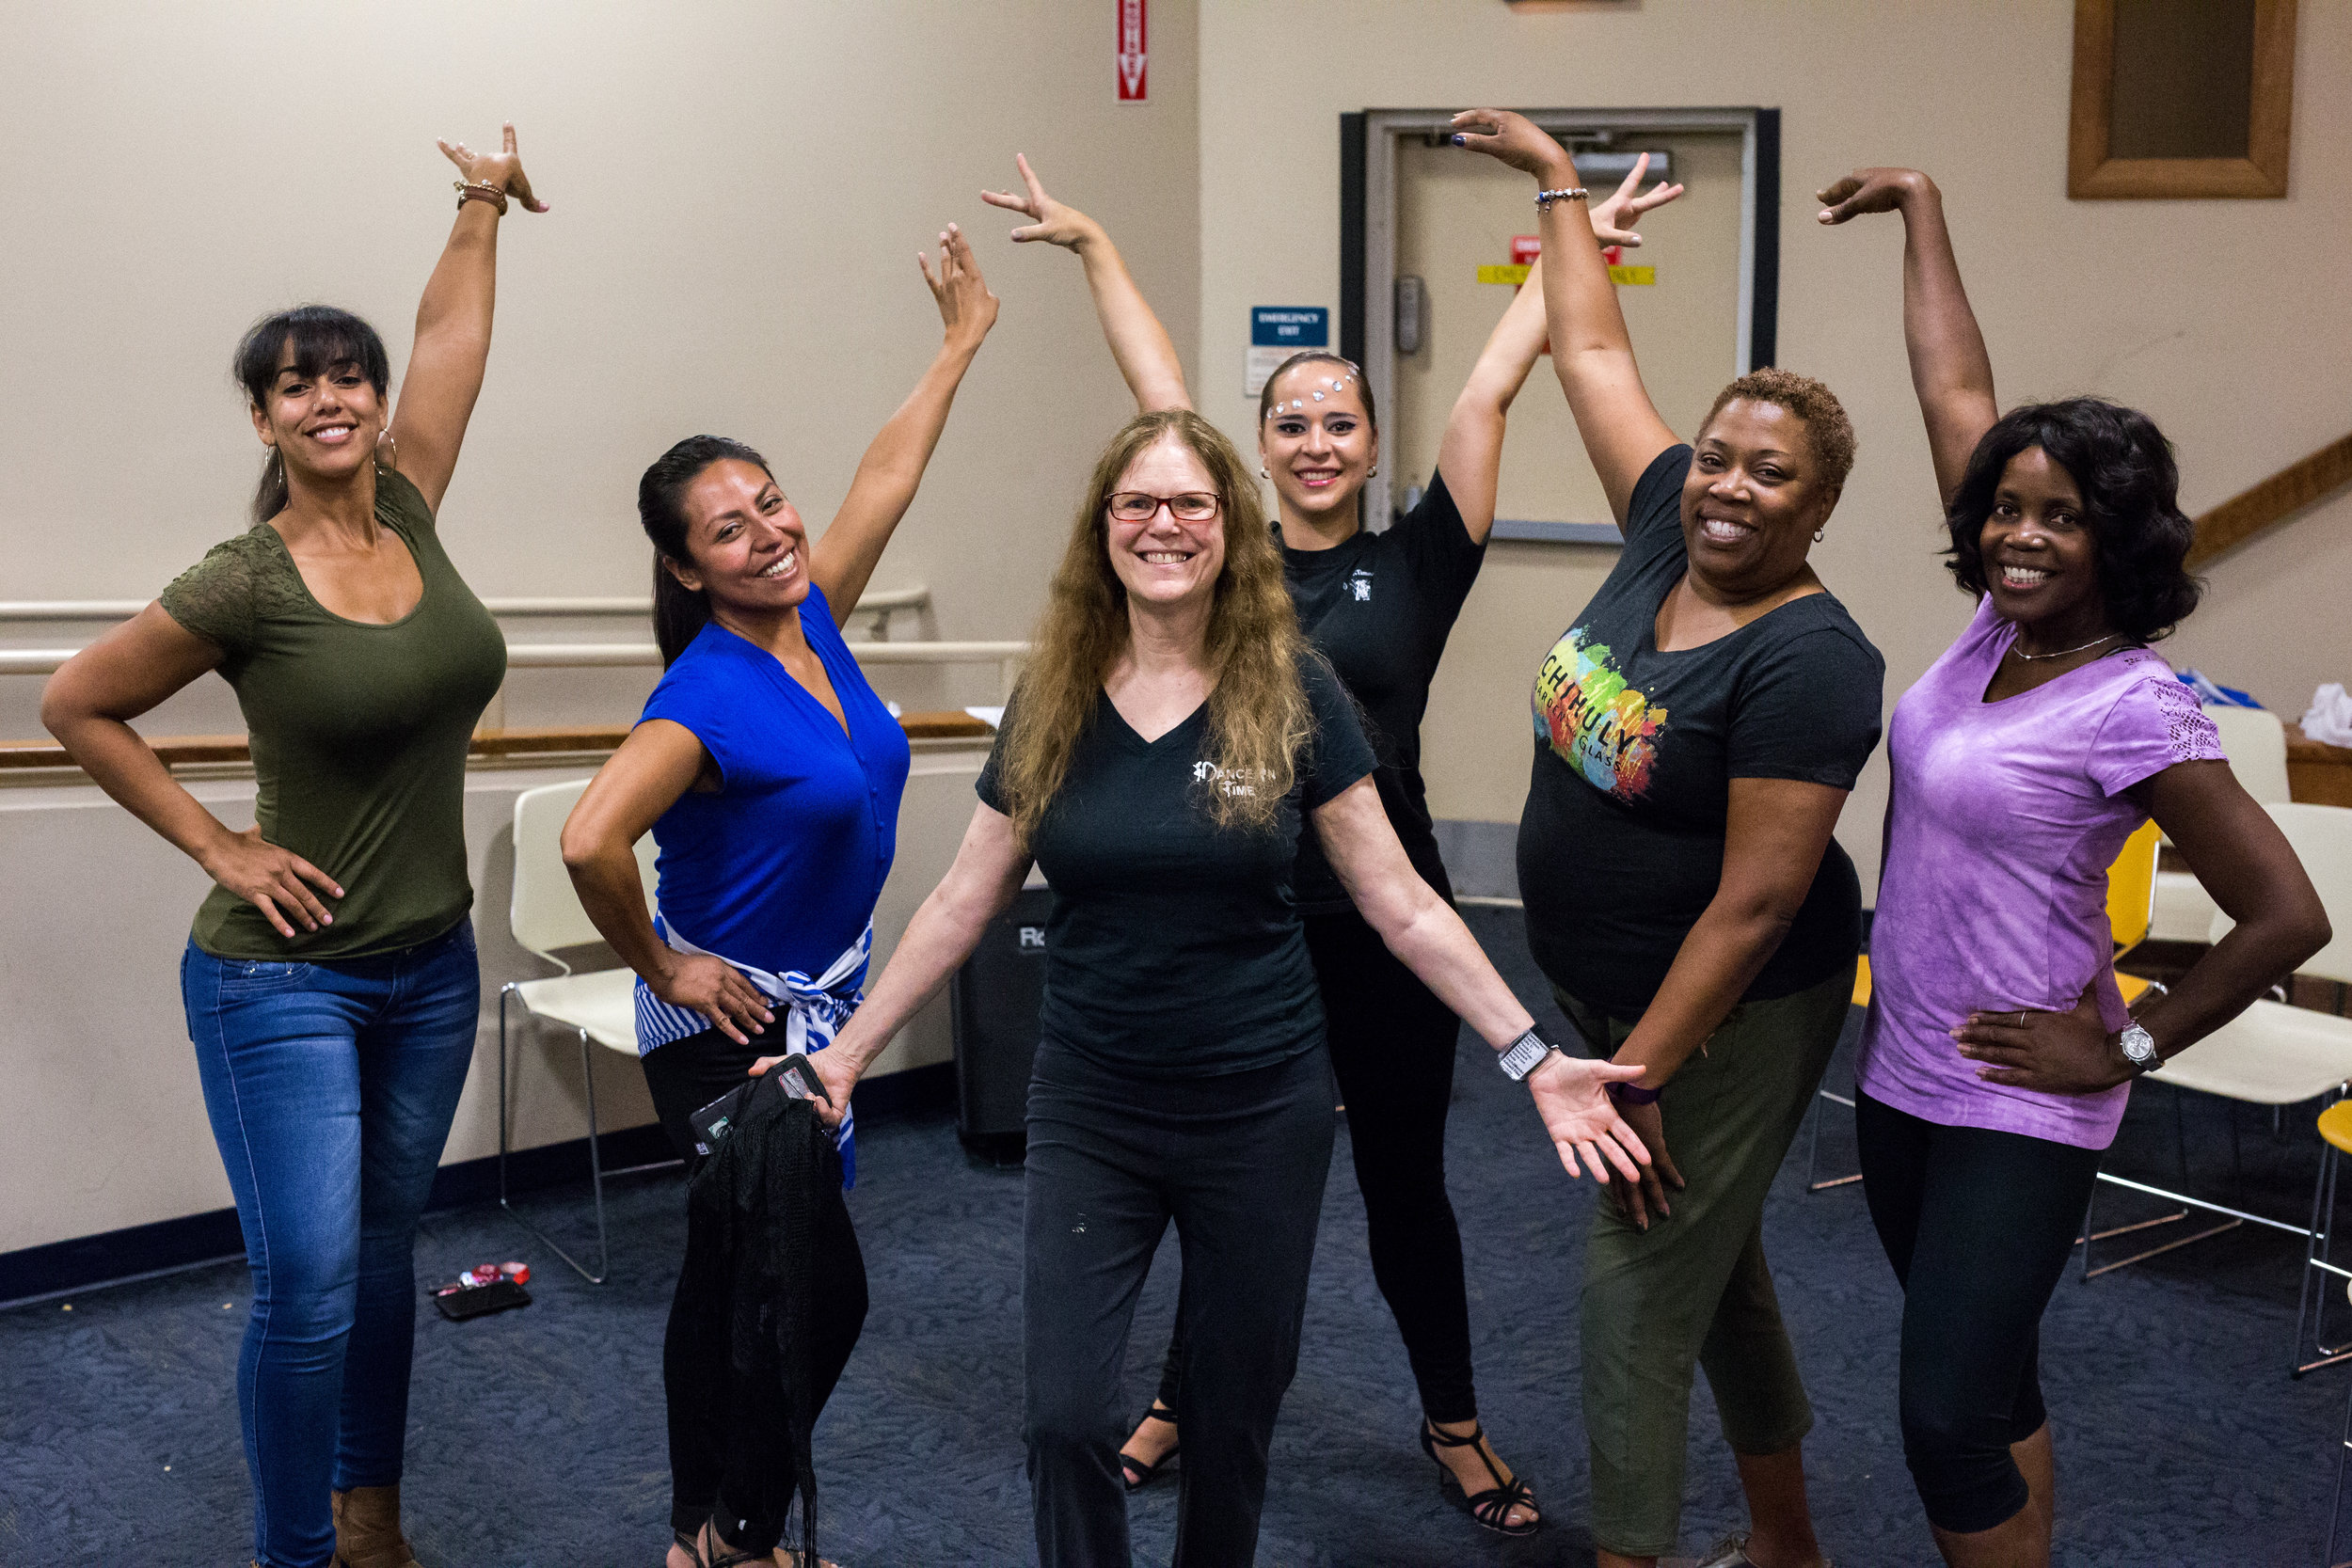 After a Library Program, Audience Members Asked To Pose With The Dancers!